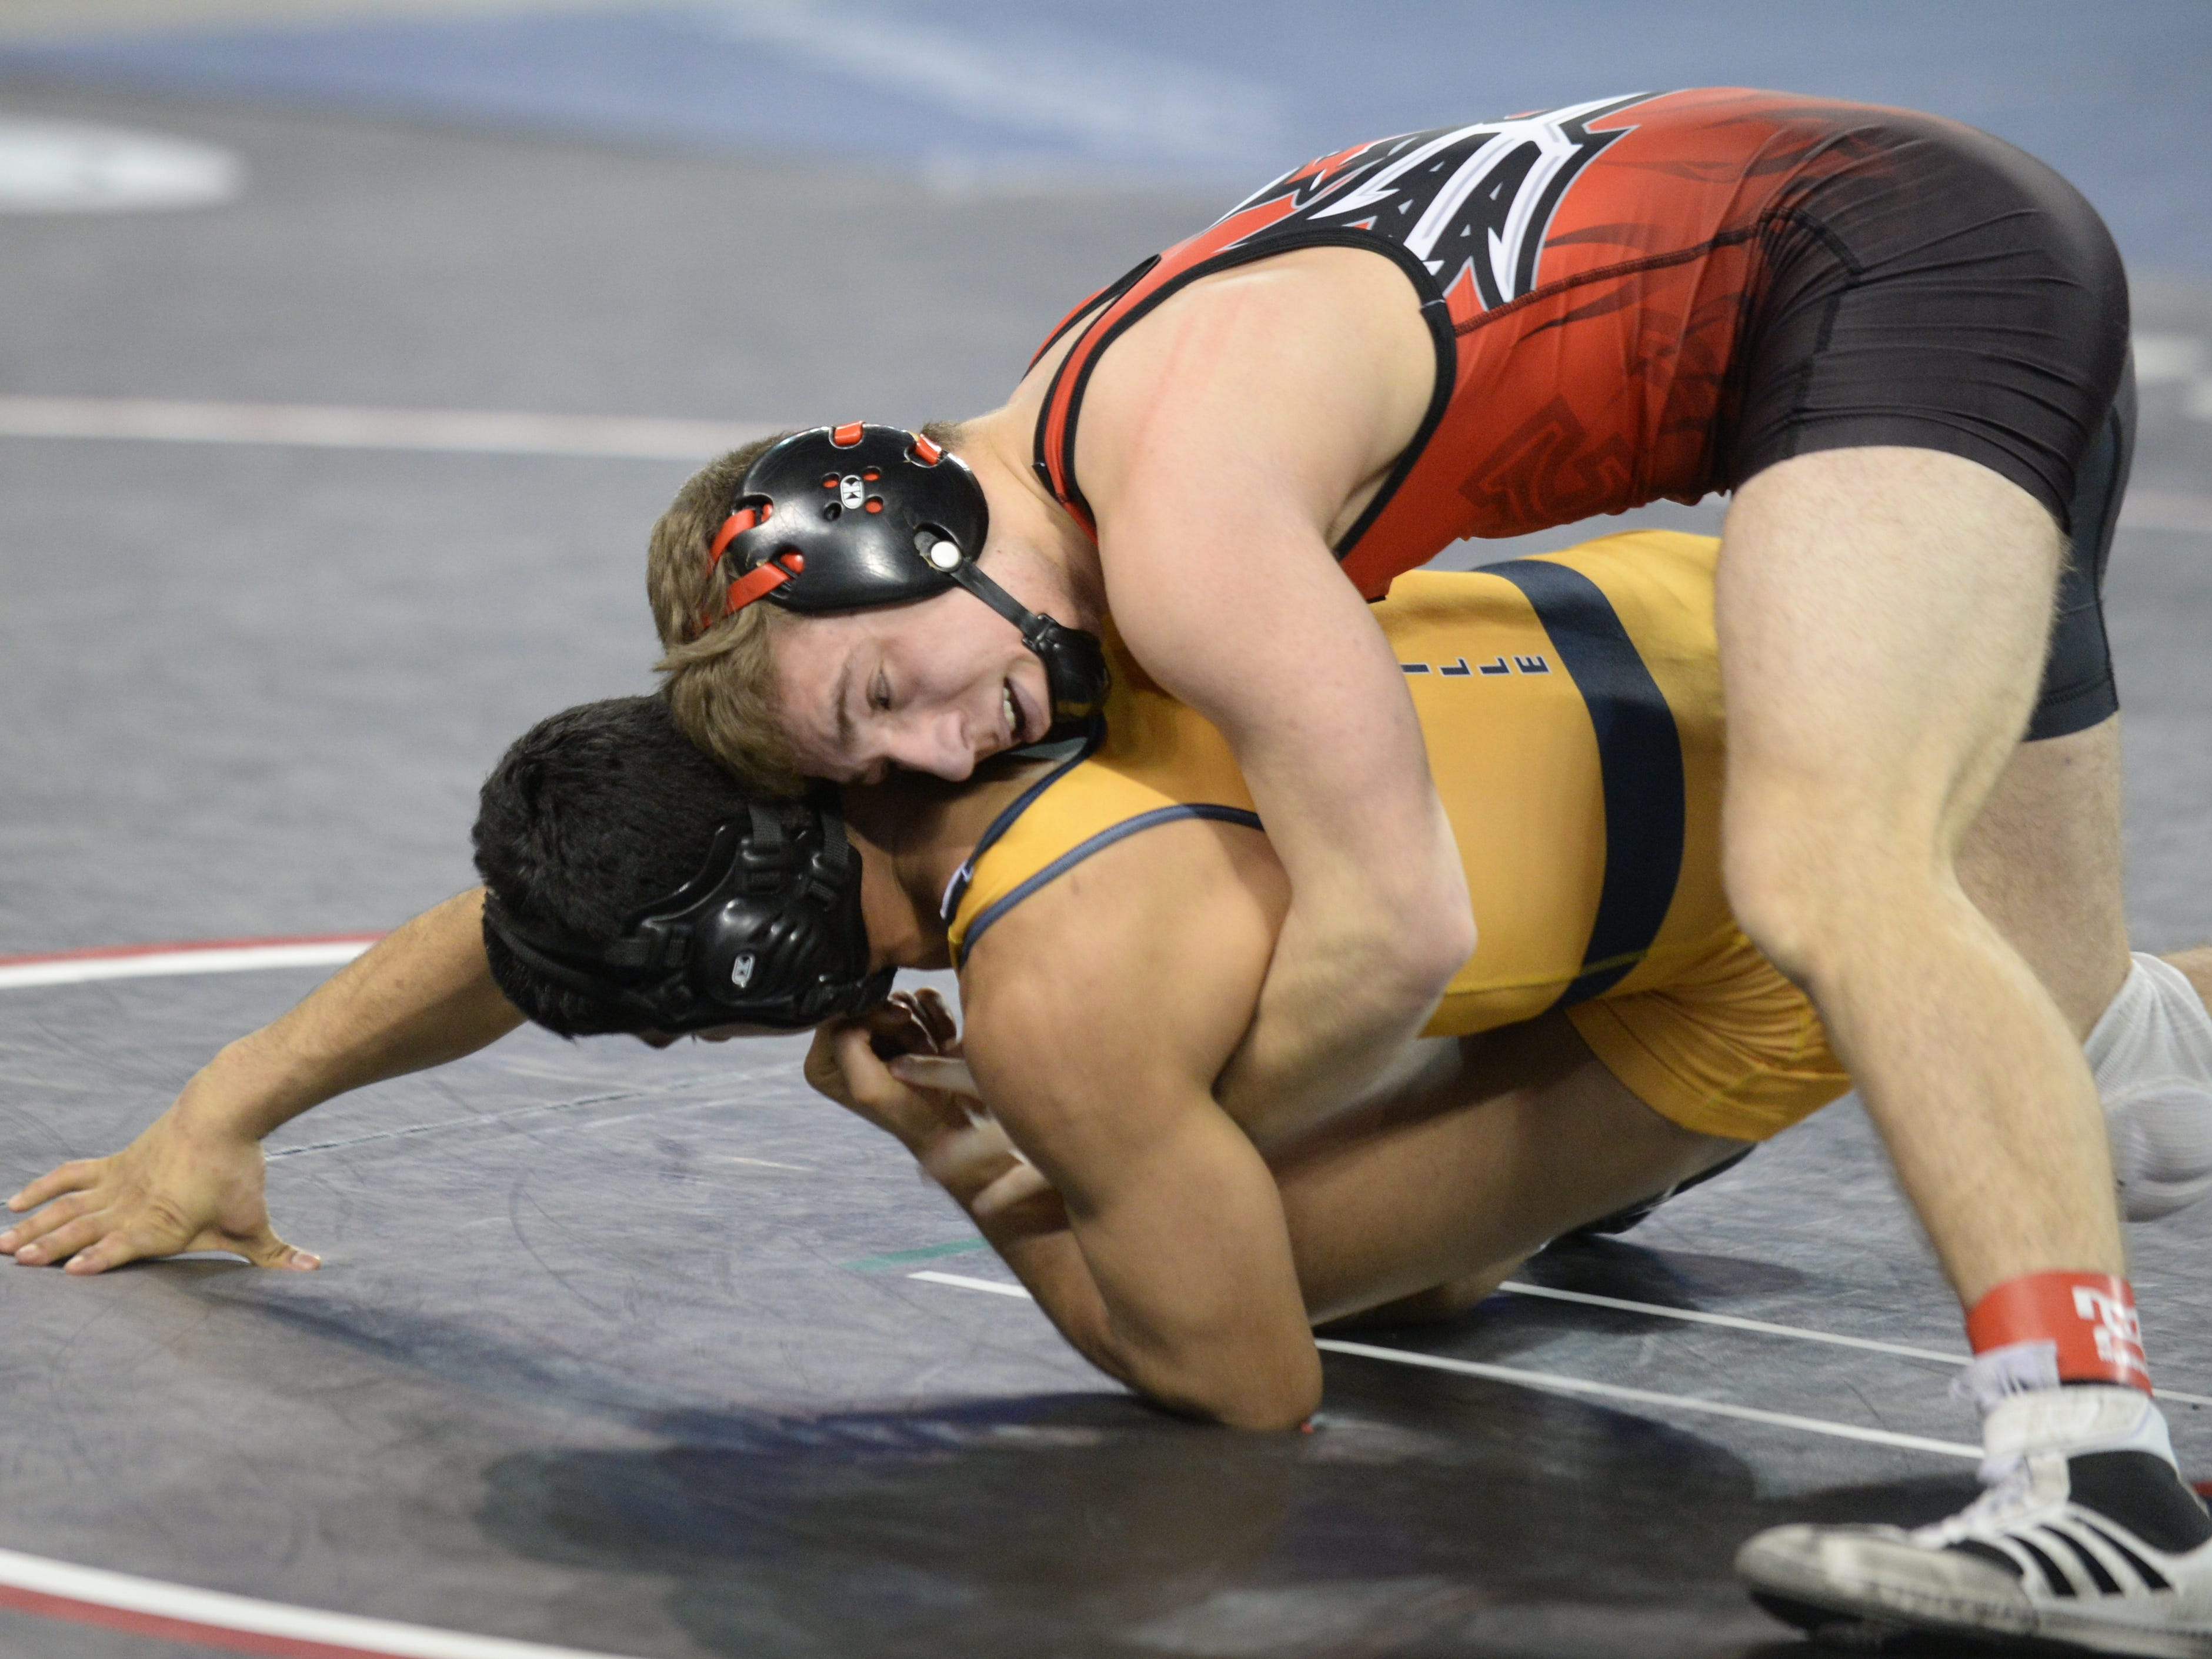 Hunterdon Central's Pasquale Vizzoni wrestles Belleville's David Guerra in a 145-pound first round bout during the NJSIAA Individual Wrestling Championships at Boardwalk Hall in Atlantic City, Thursday, Feb. 28, 2019.